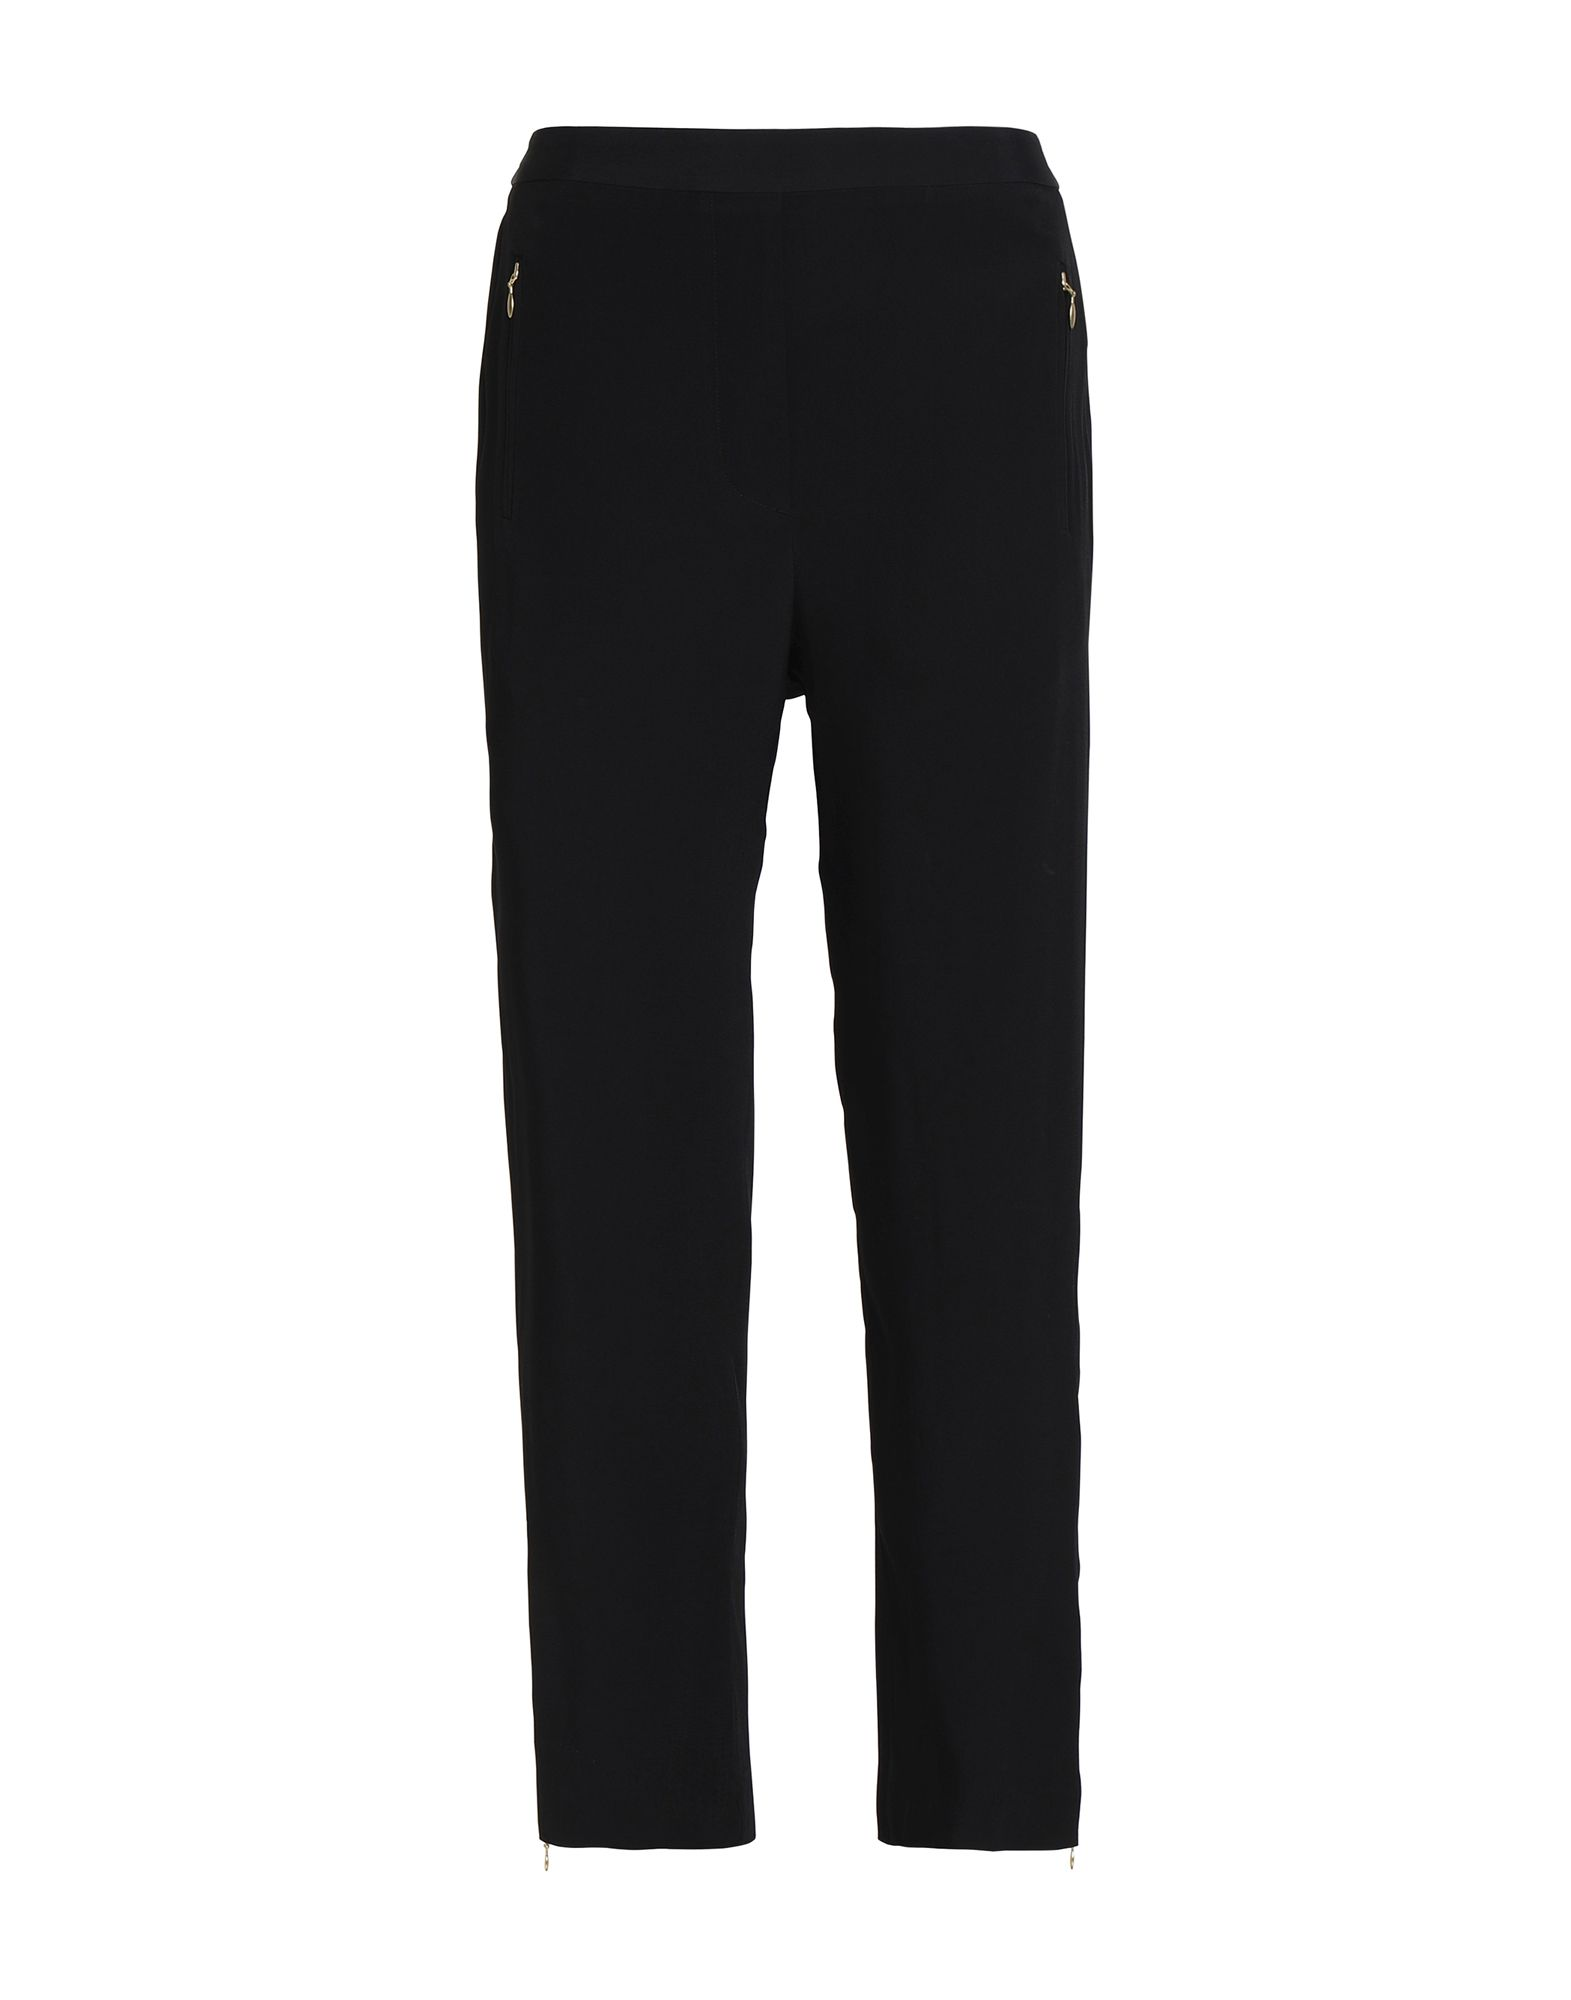 ZIMMERMANN Casual pants. cady, no appliqués, basic solid color, high waisted, regular fit, tapered leg, elasticized waist, multipockets, pocket with zipper, zips at hem. 100% Viscose